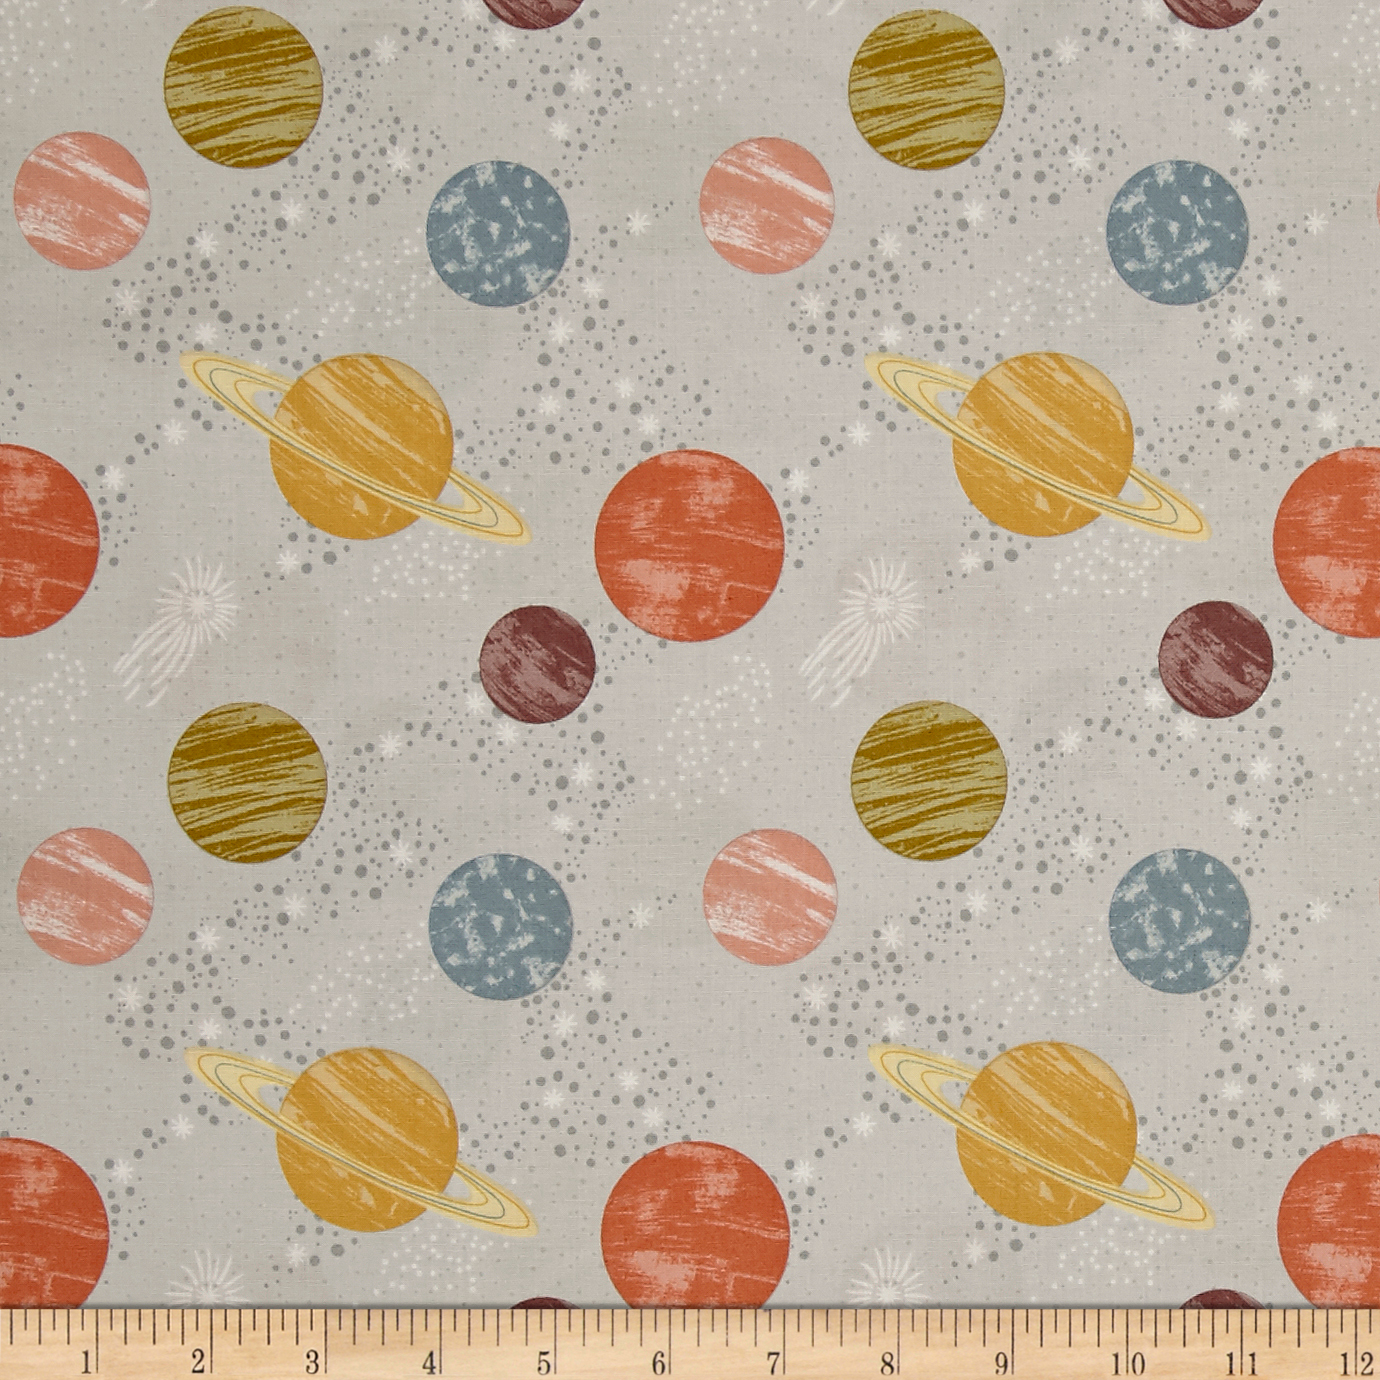 To The Moon & Back Planets Light Grey Fabric by E. E. Schenck in USA